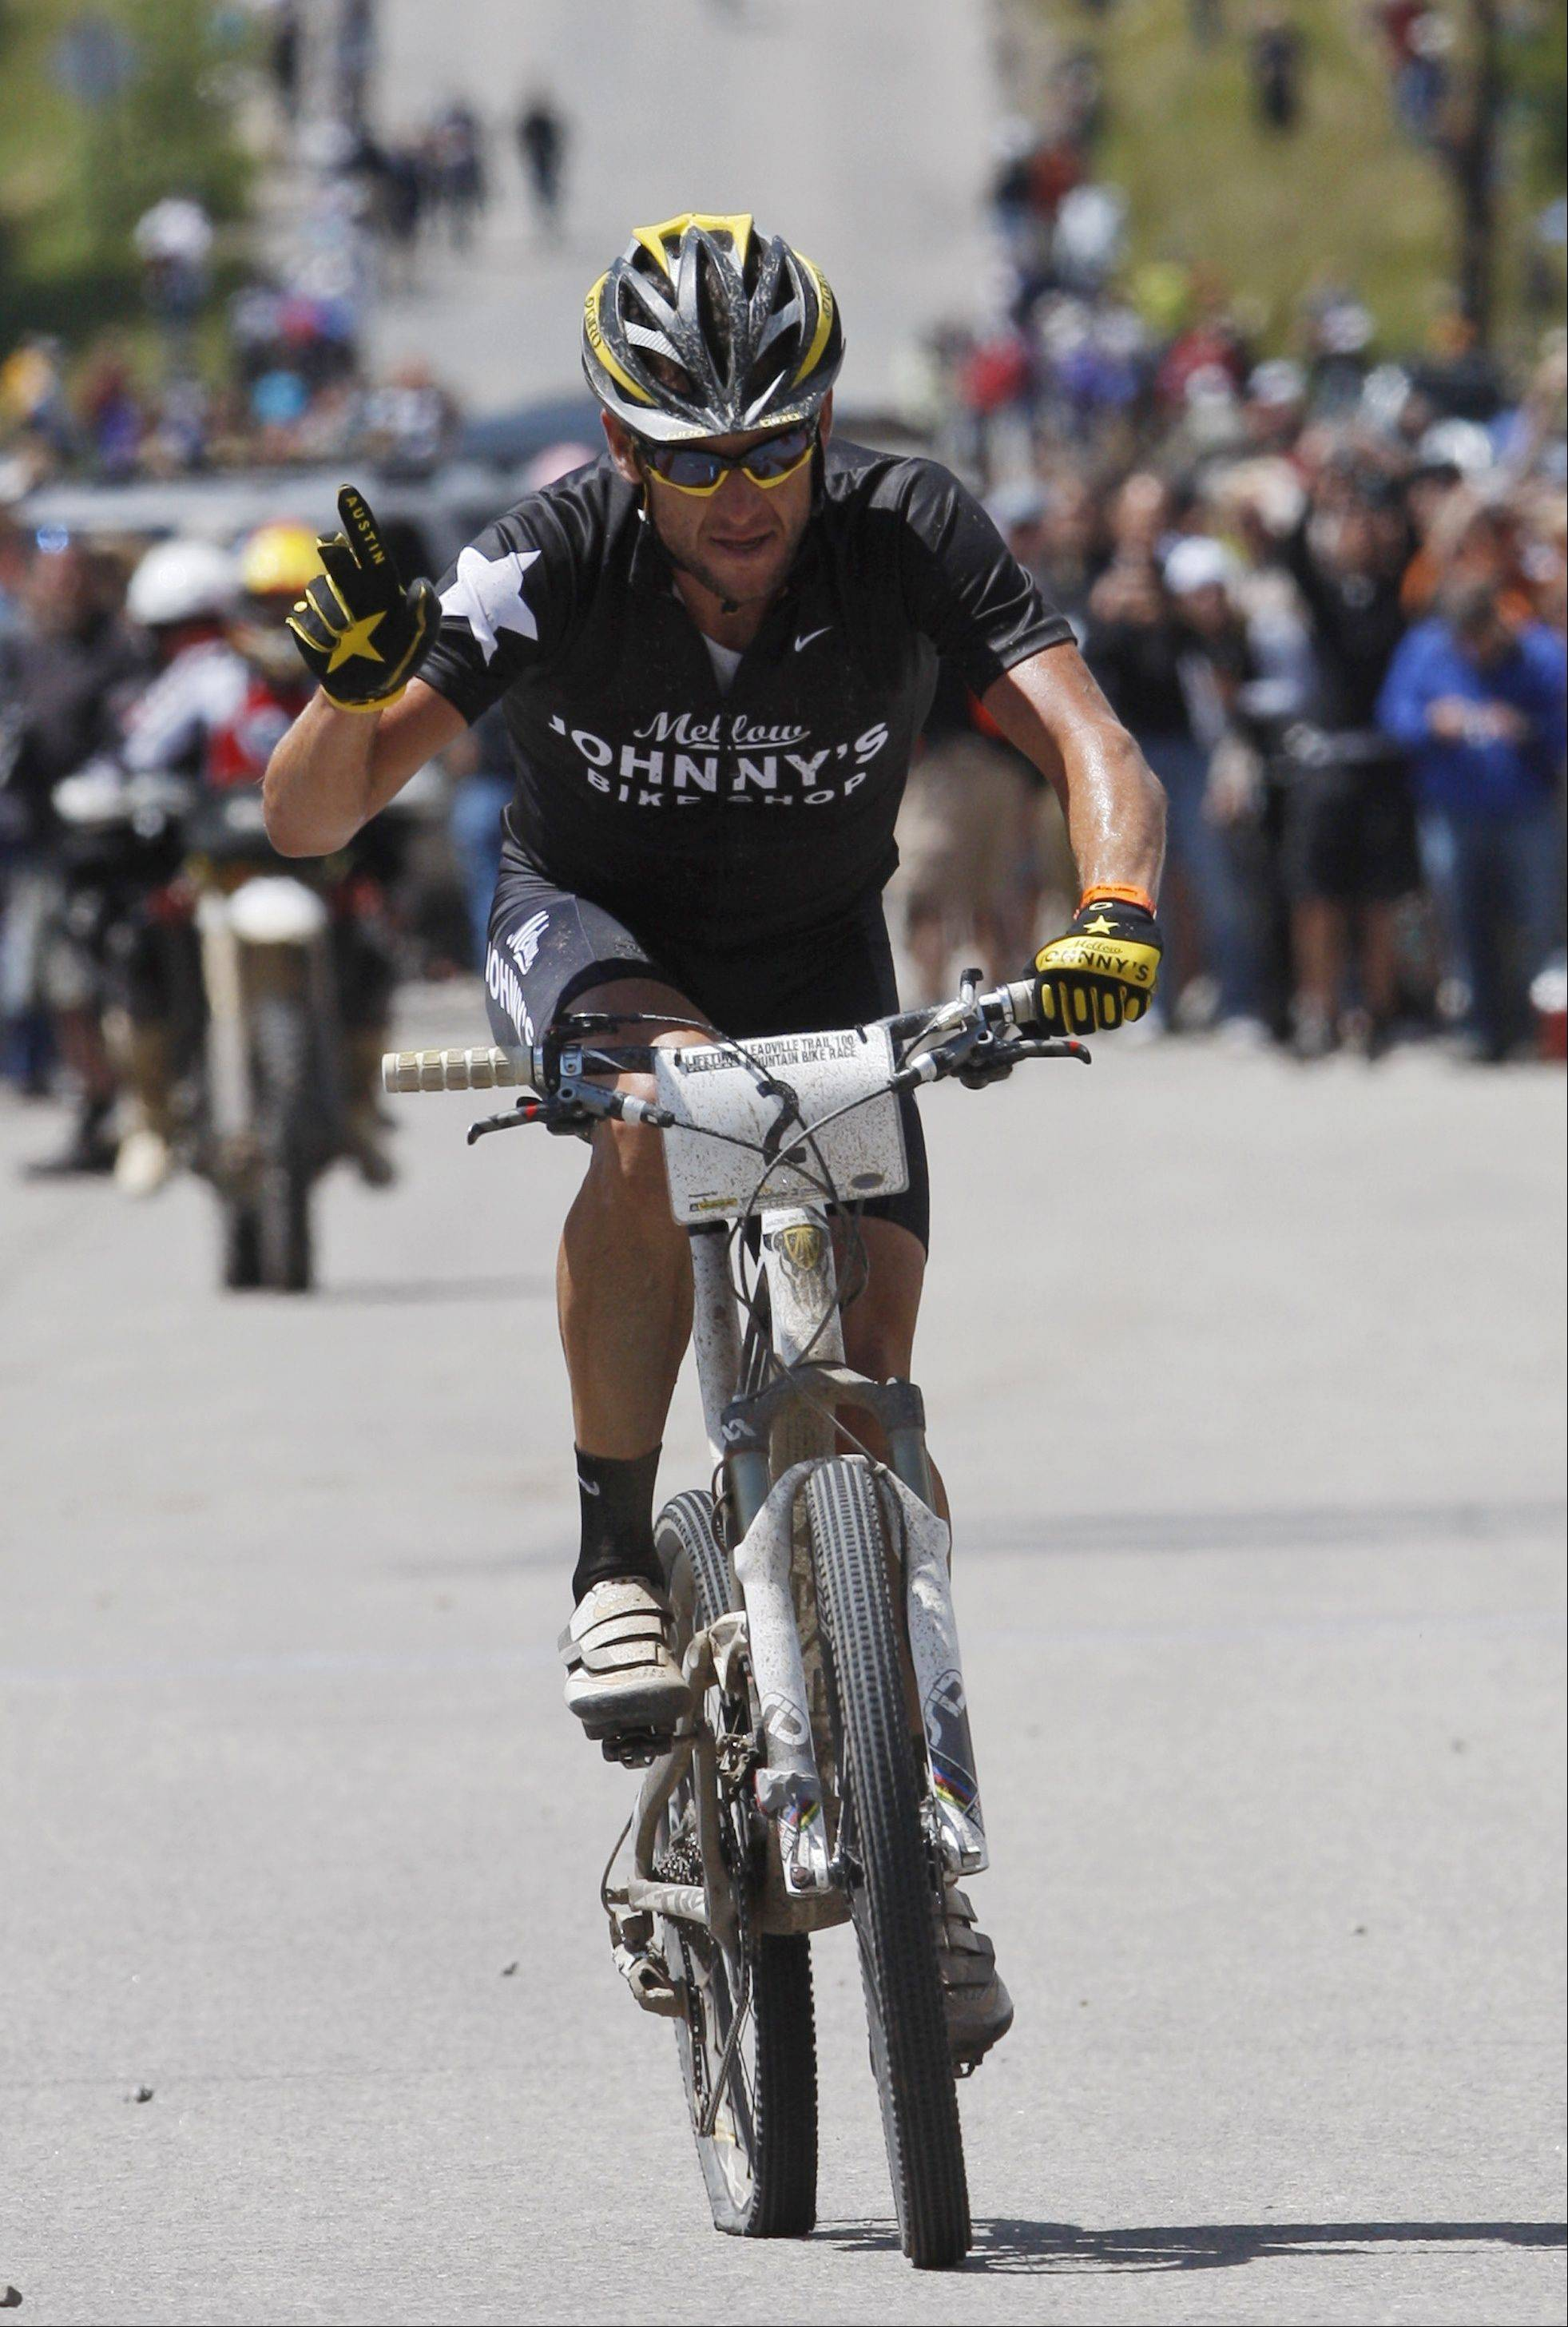 Lance Armstrong waves as he wins the Leadville Trail 100 mountain bike cycling race in Leadville, Colo., on Saturday, Aug. 15, 2009.